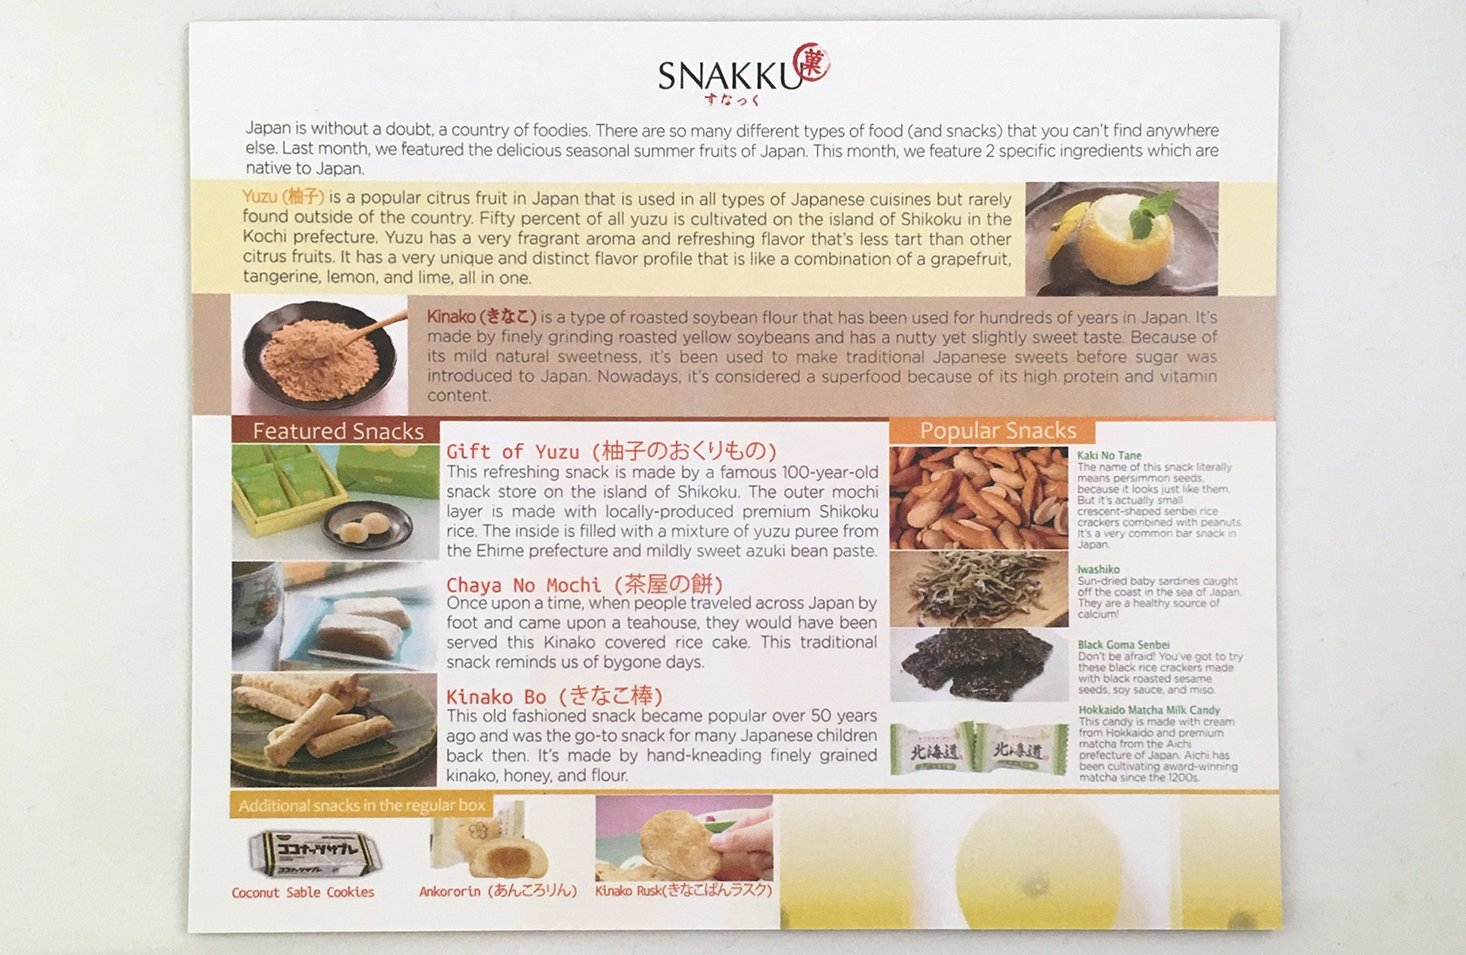 snakku-tasting-box-september-2016-booklet